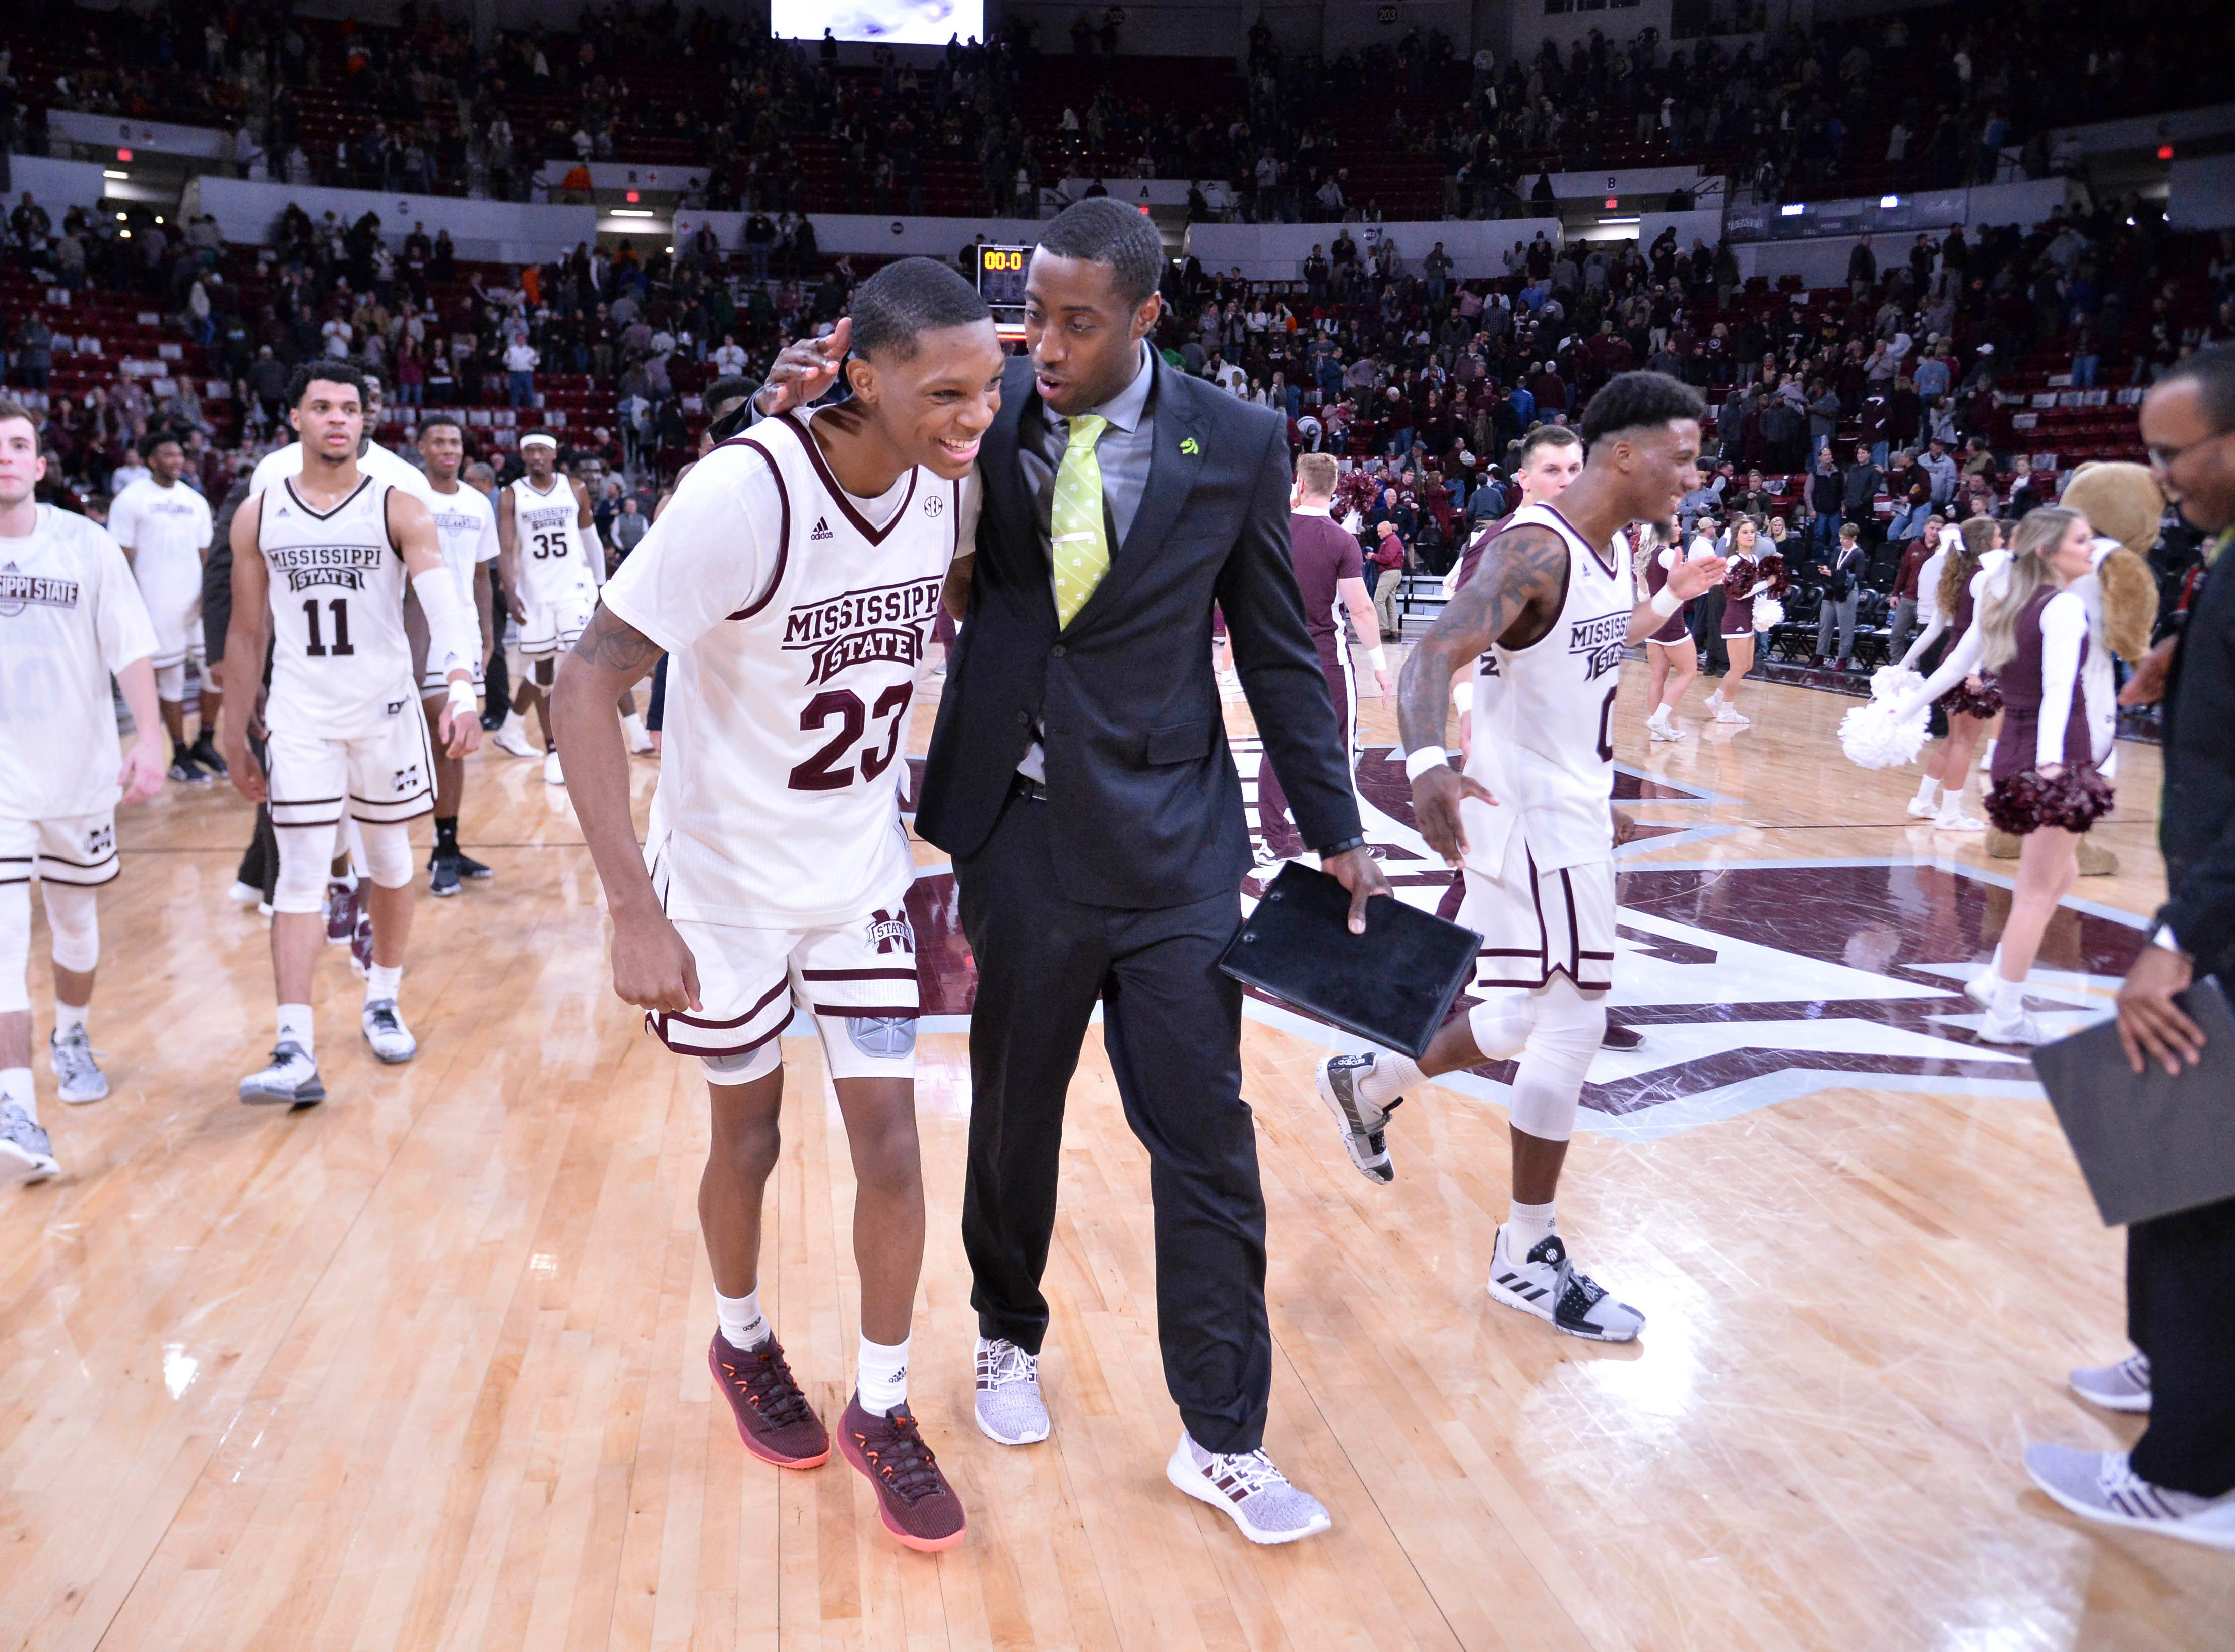 Jan 26, 2019; Starkville, MS, USA; Mississippi State Bulldogs players and staff react after defeating the Auburn Tigers at Humphrey Coliseum. Mandatory Credit: Matt Bush-USA TODAY Sports